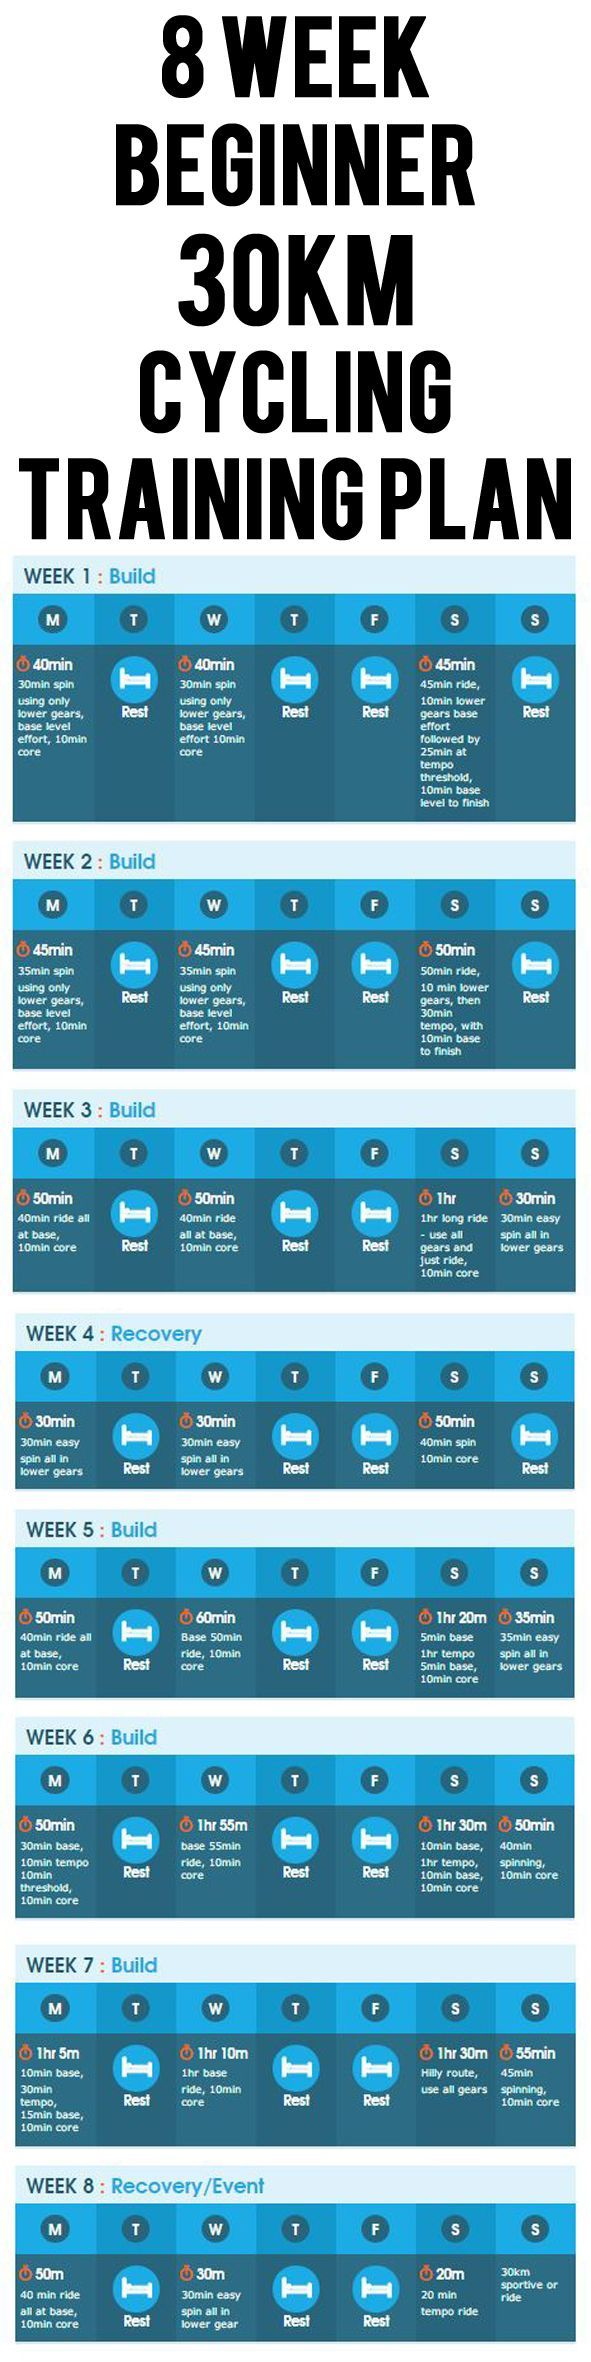 8 WEEK BEGINNER 30KM  CYCLING TRAINING PLAN. #cycling #bike #cycle #bicycle #trainingplan